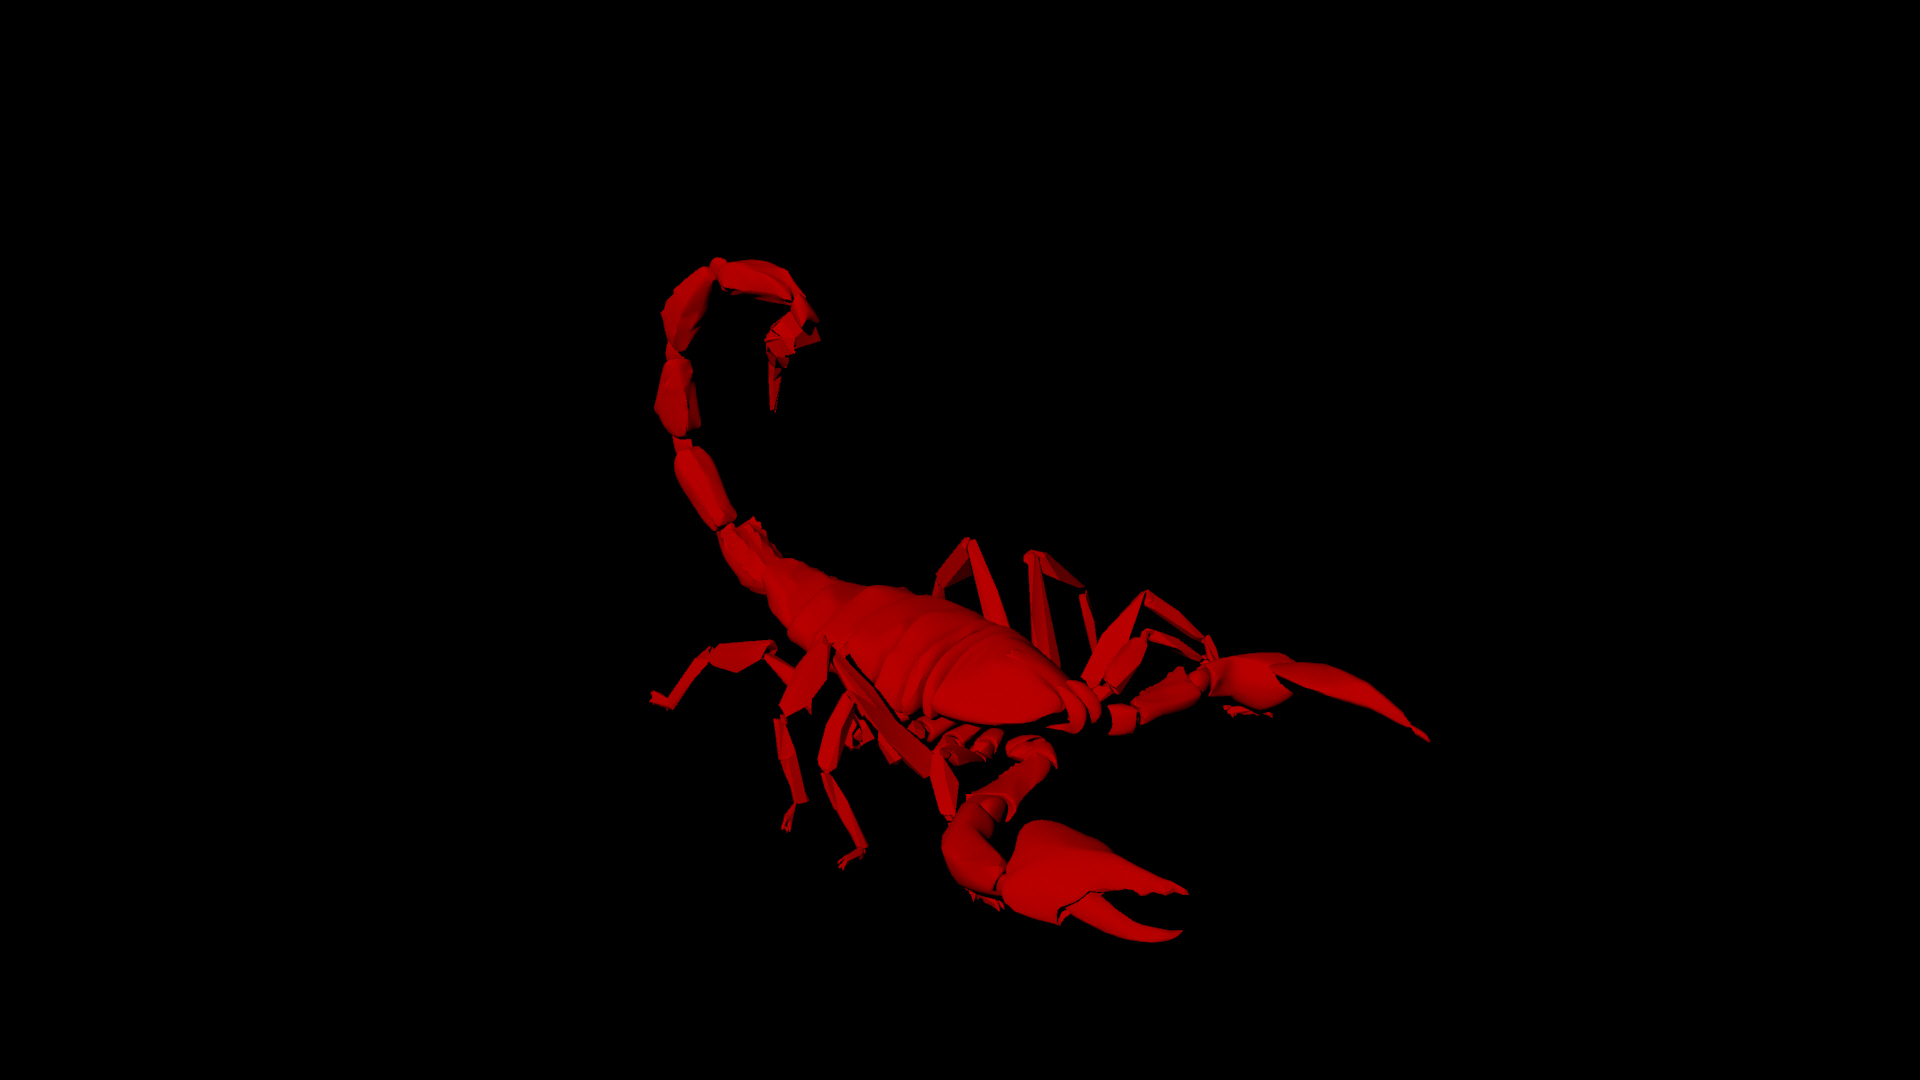 Red scorpion wallpaper - photo#10